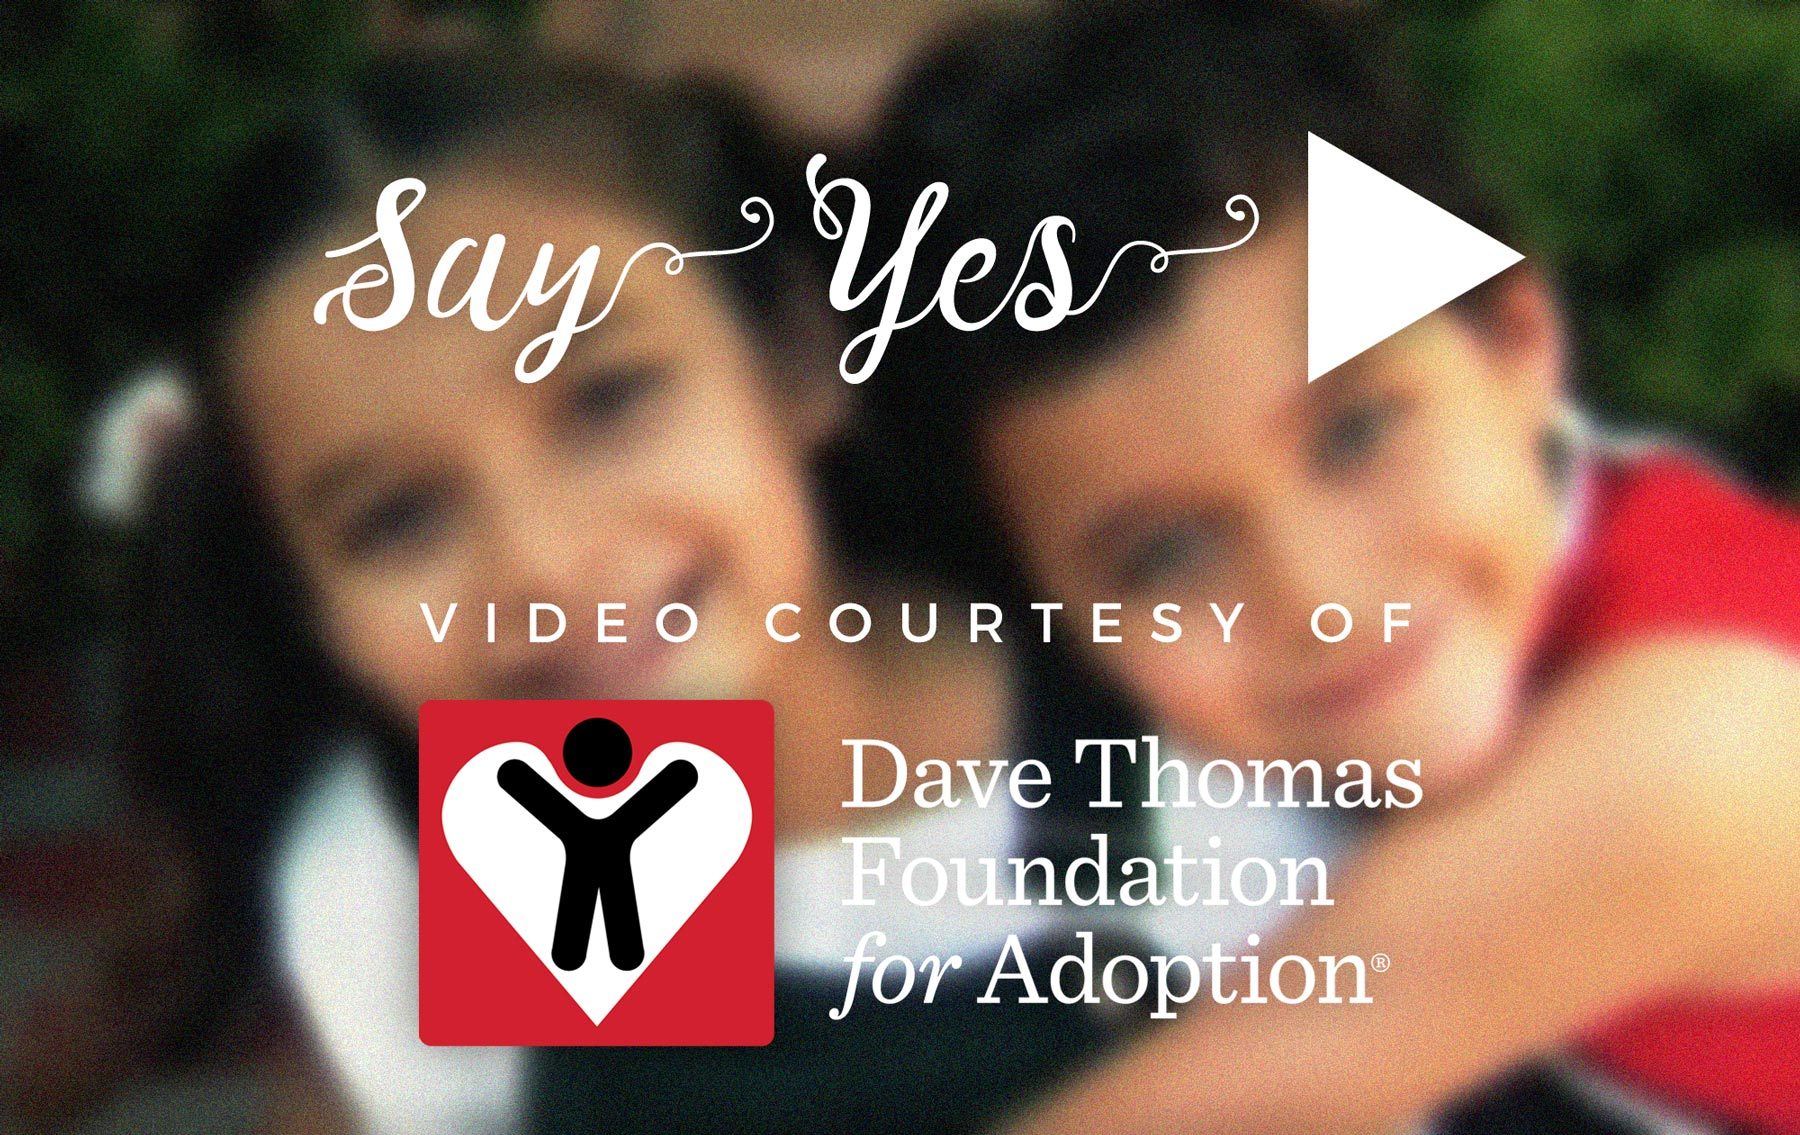 Say yes to adoption video